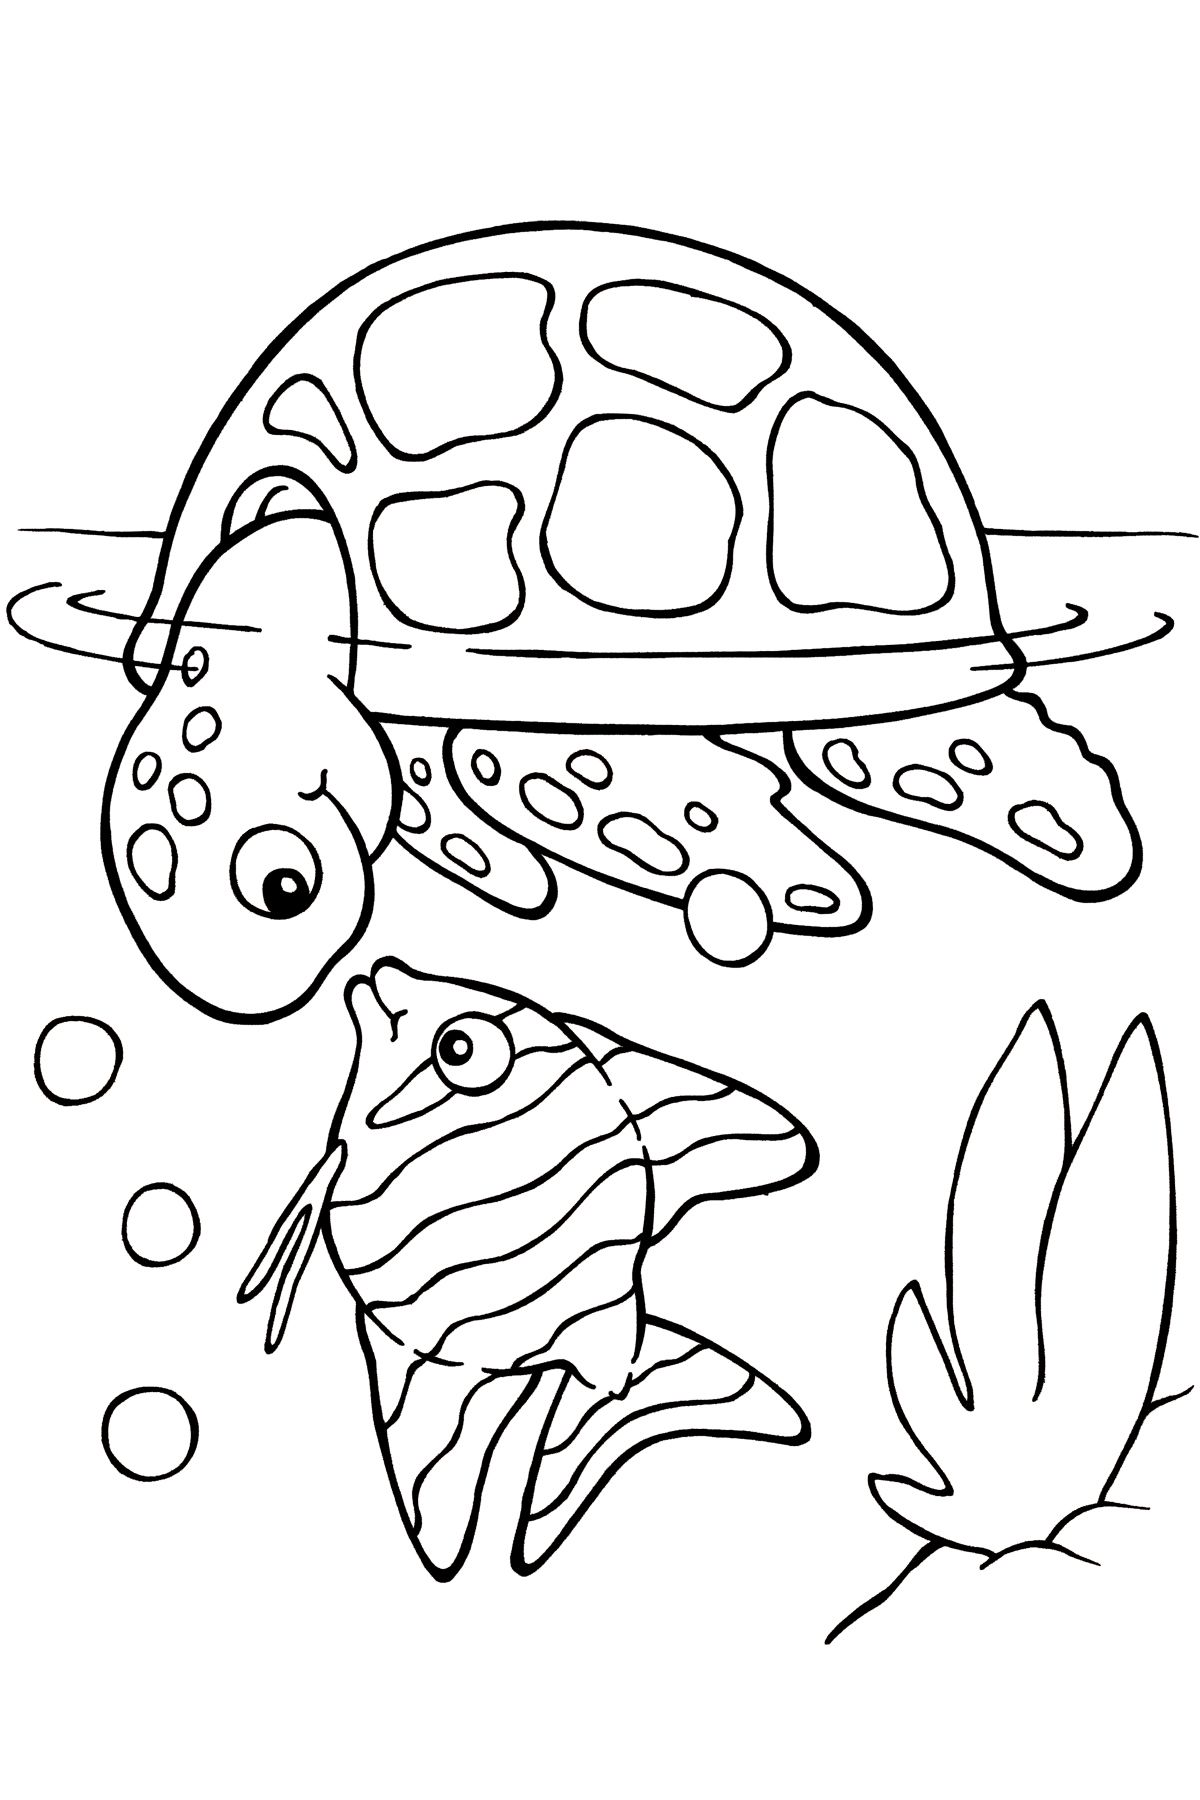 Uncategorized Coloring Page Turtle print coloring image turtle spring colors and embroidery sea page